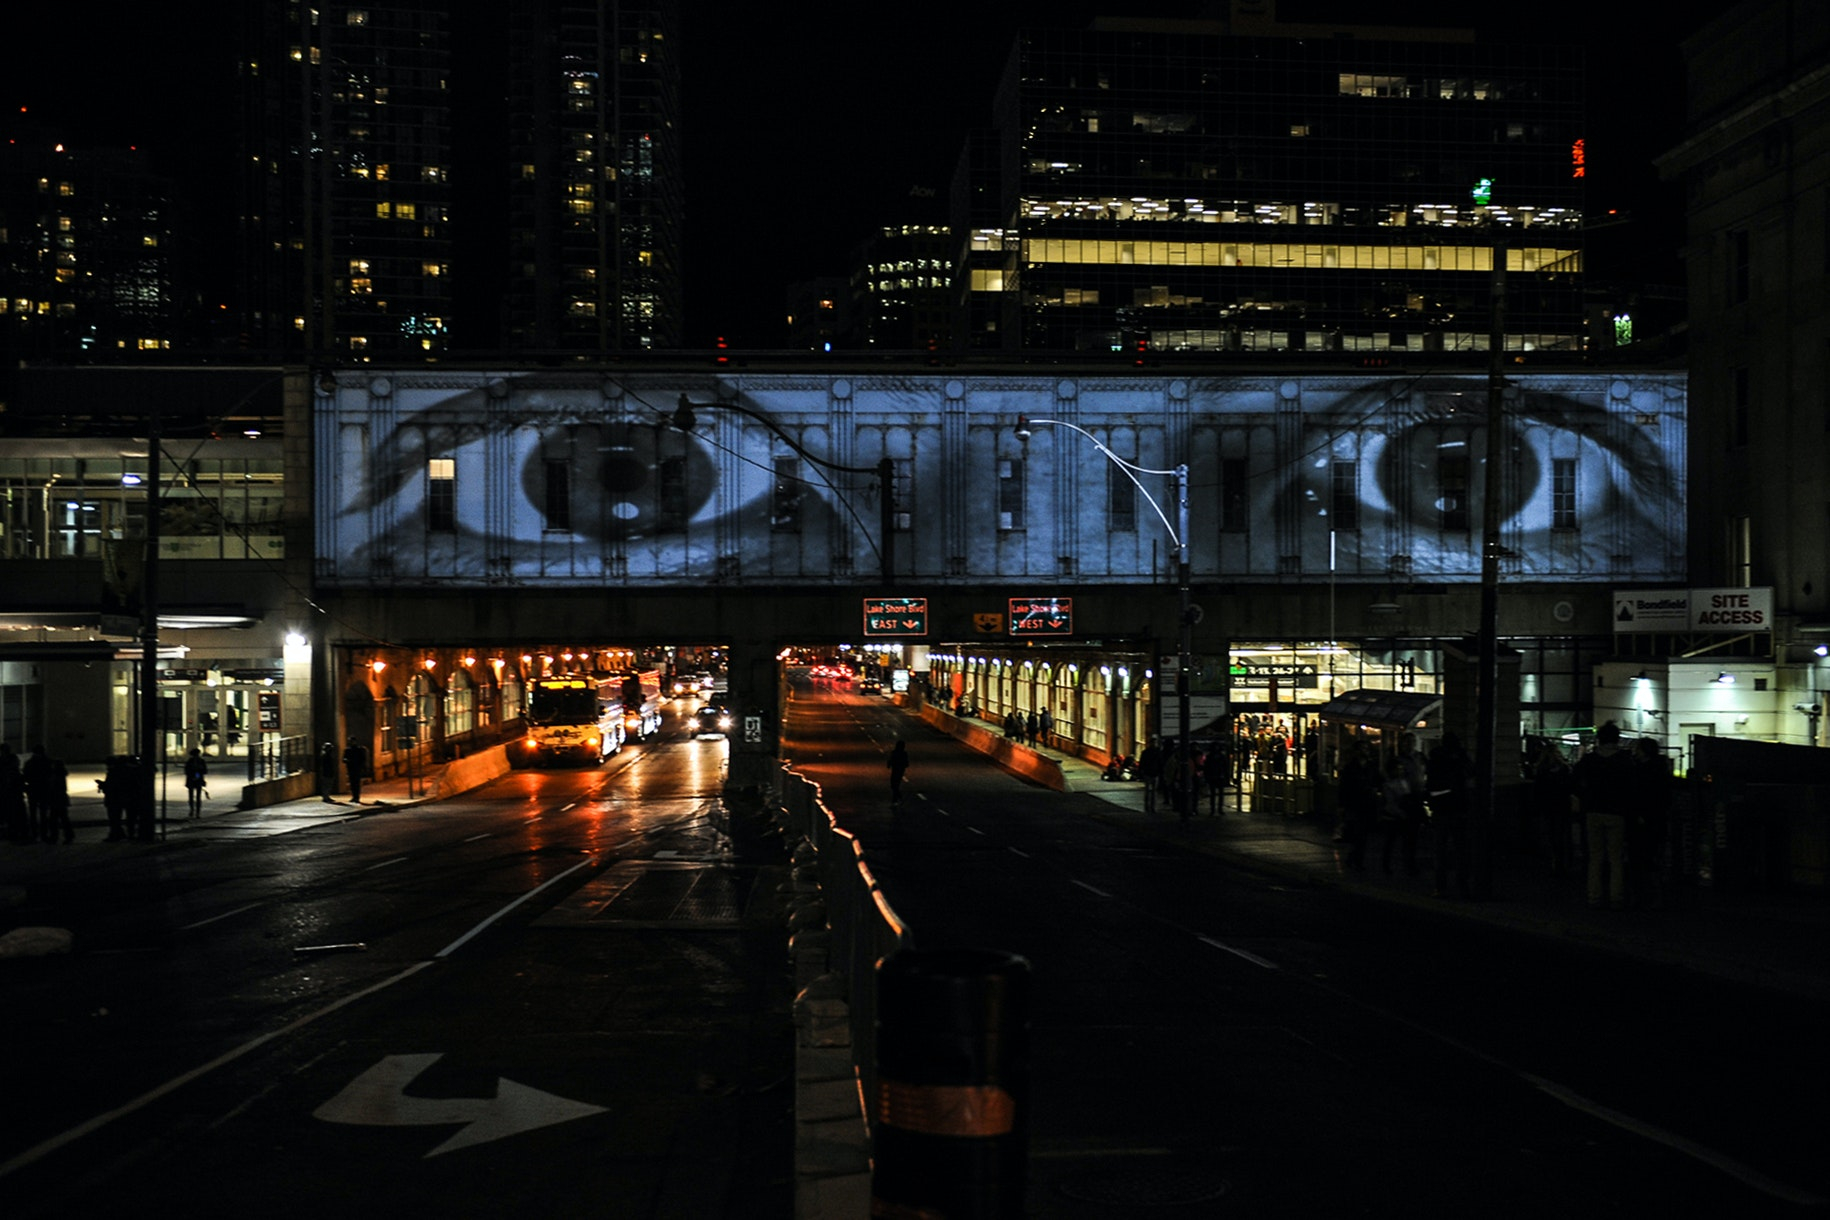 """The Eyes of the Bridge"" by JR. Nuit Blanche Toronto 2015."